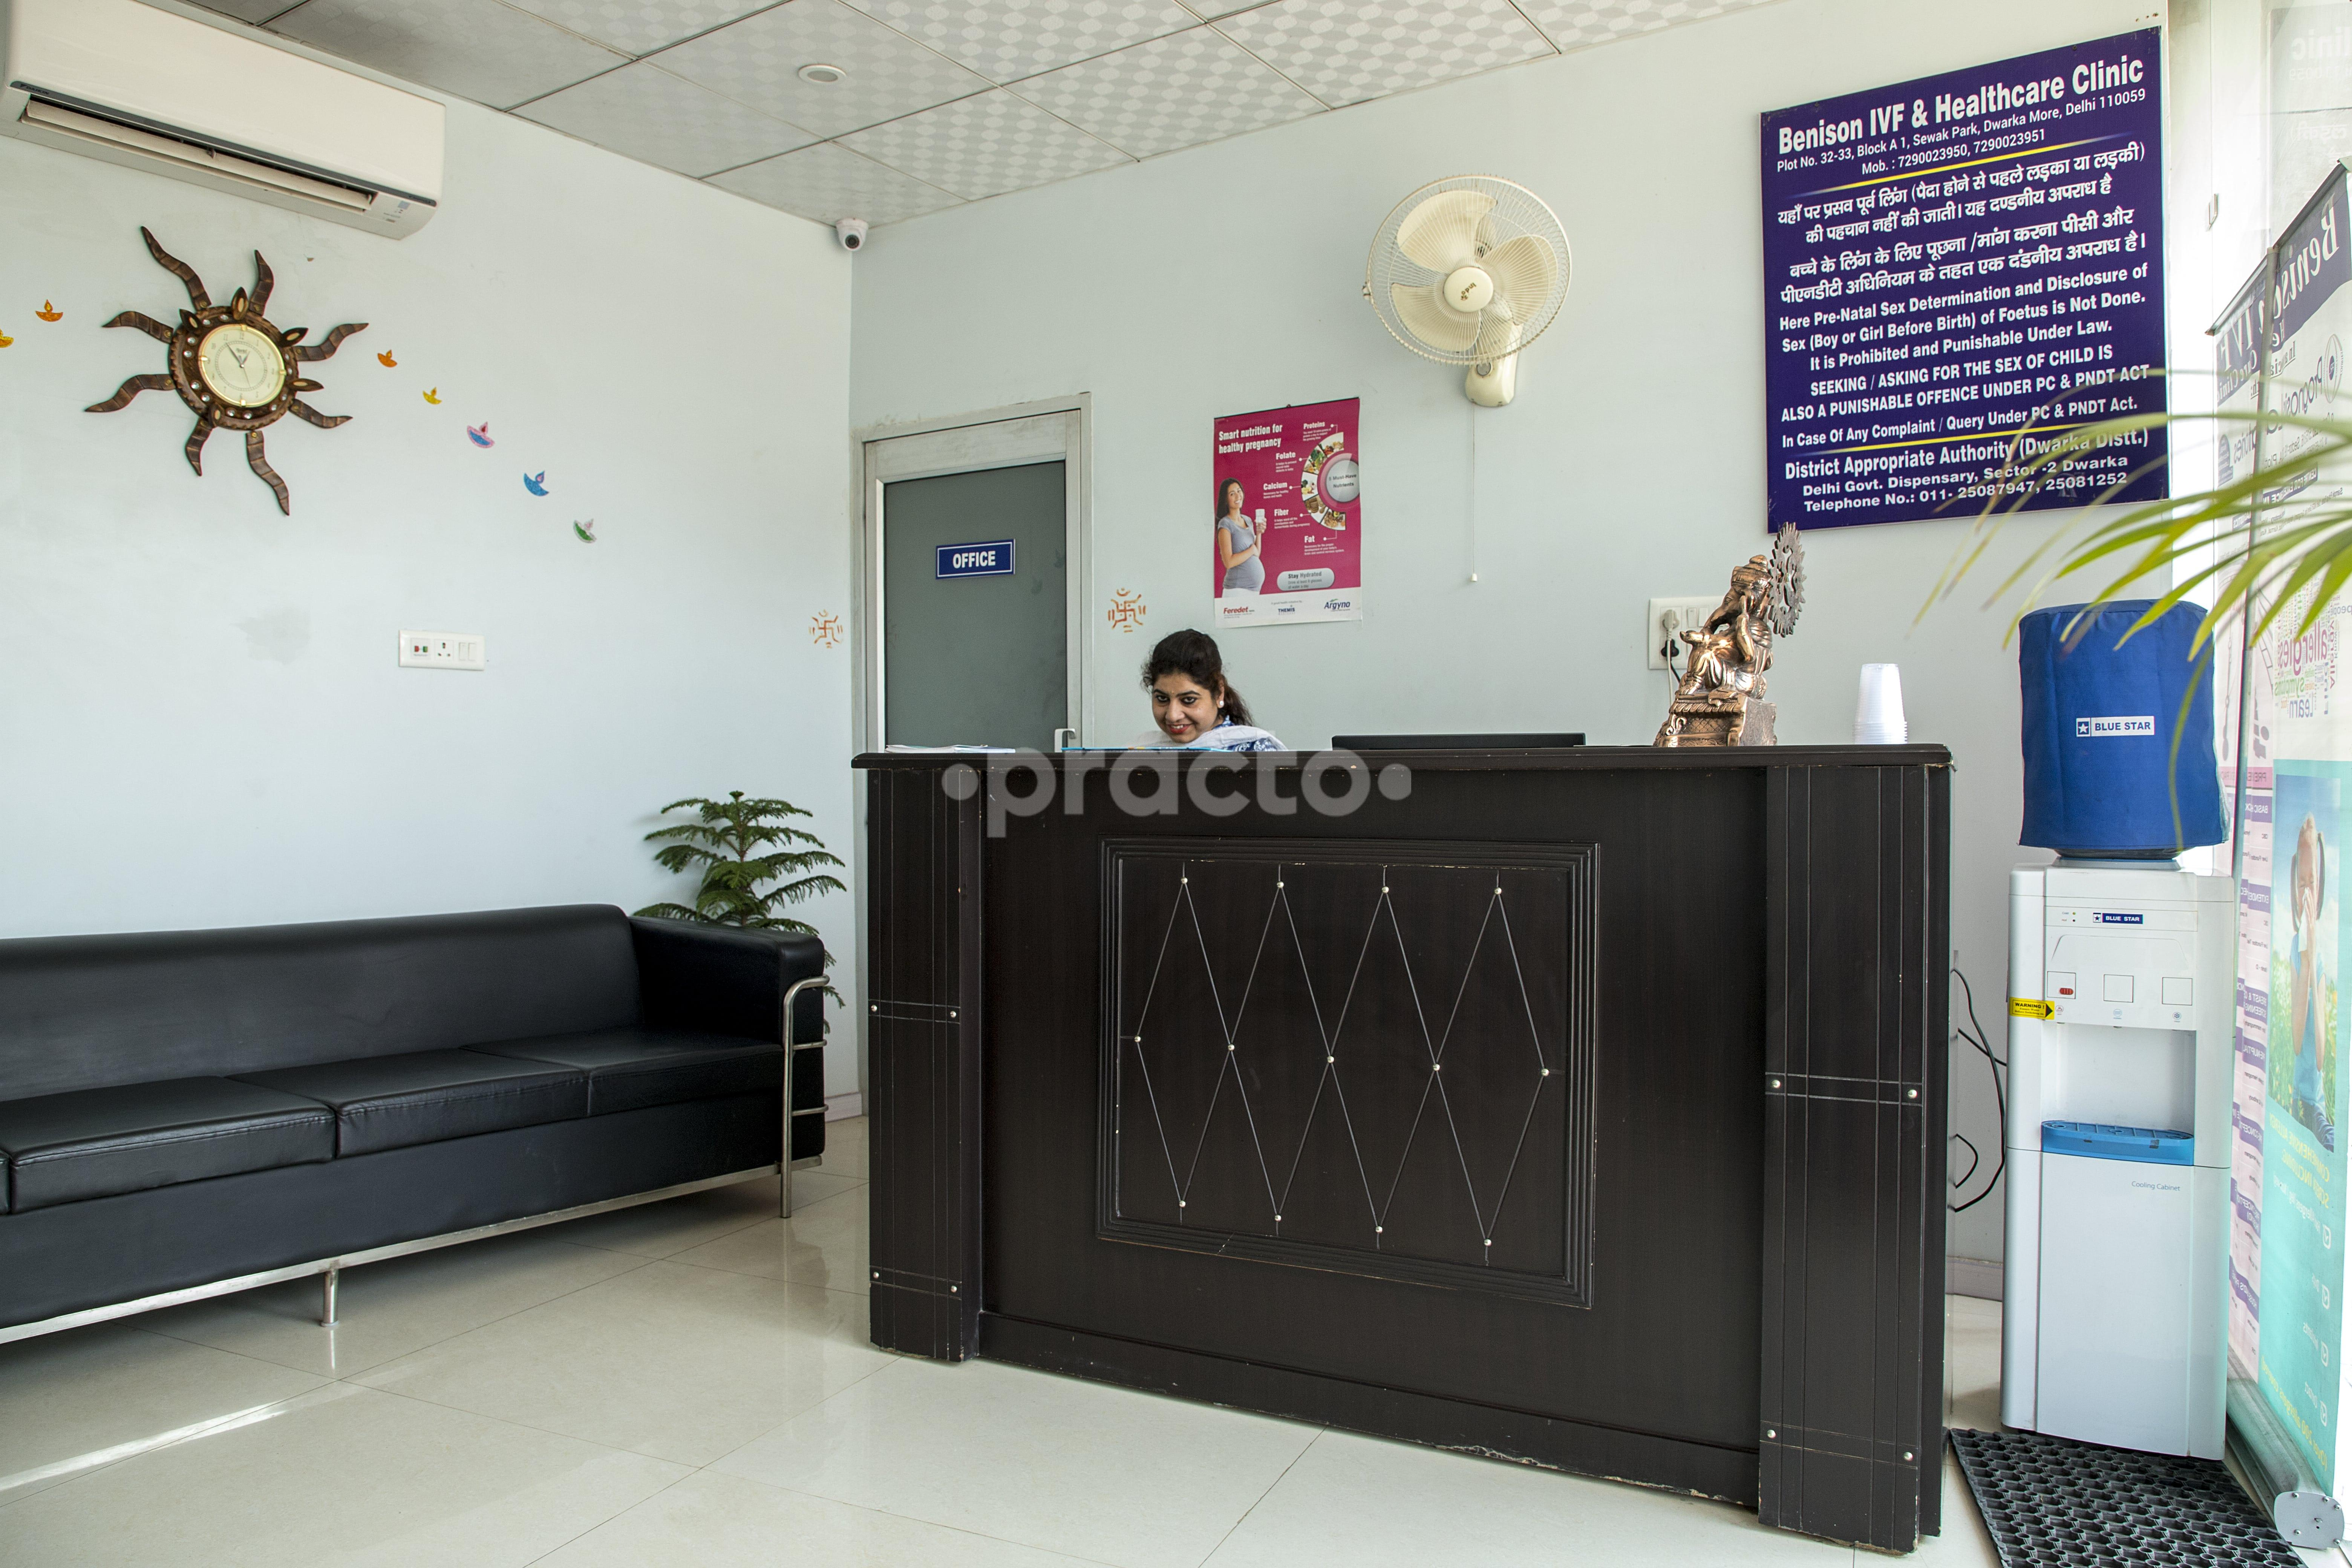 Gynecologist Obstetricians In Rohini, Delhi - Instant Appointment